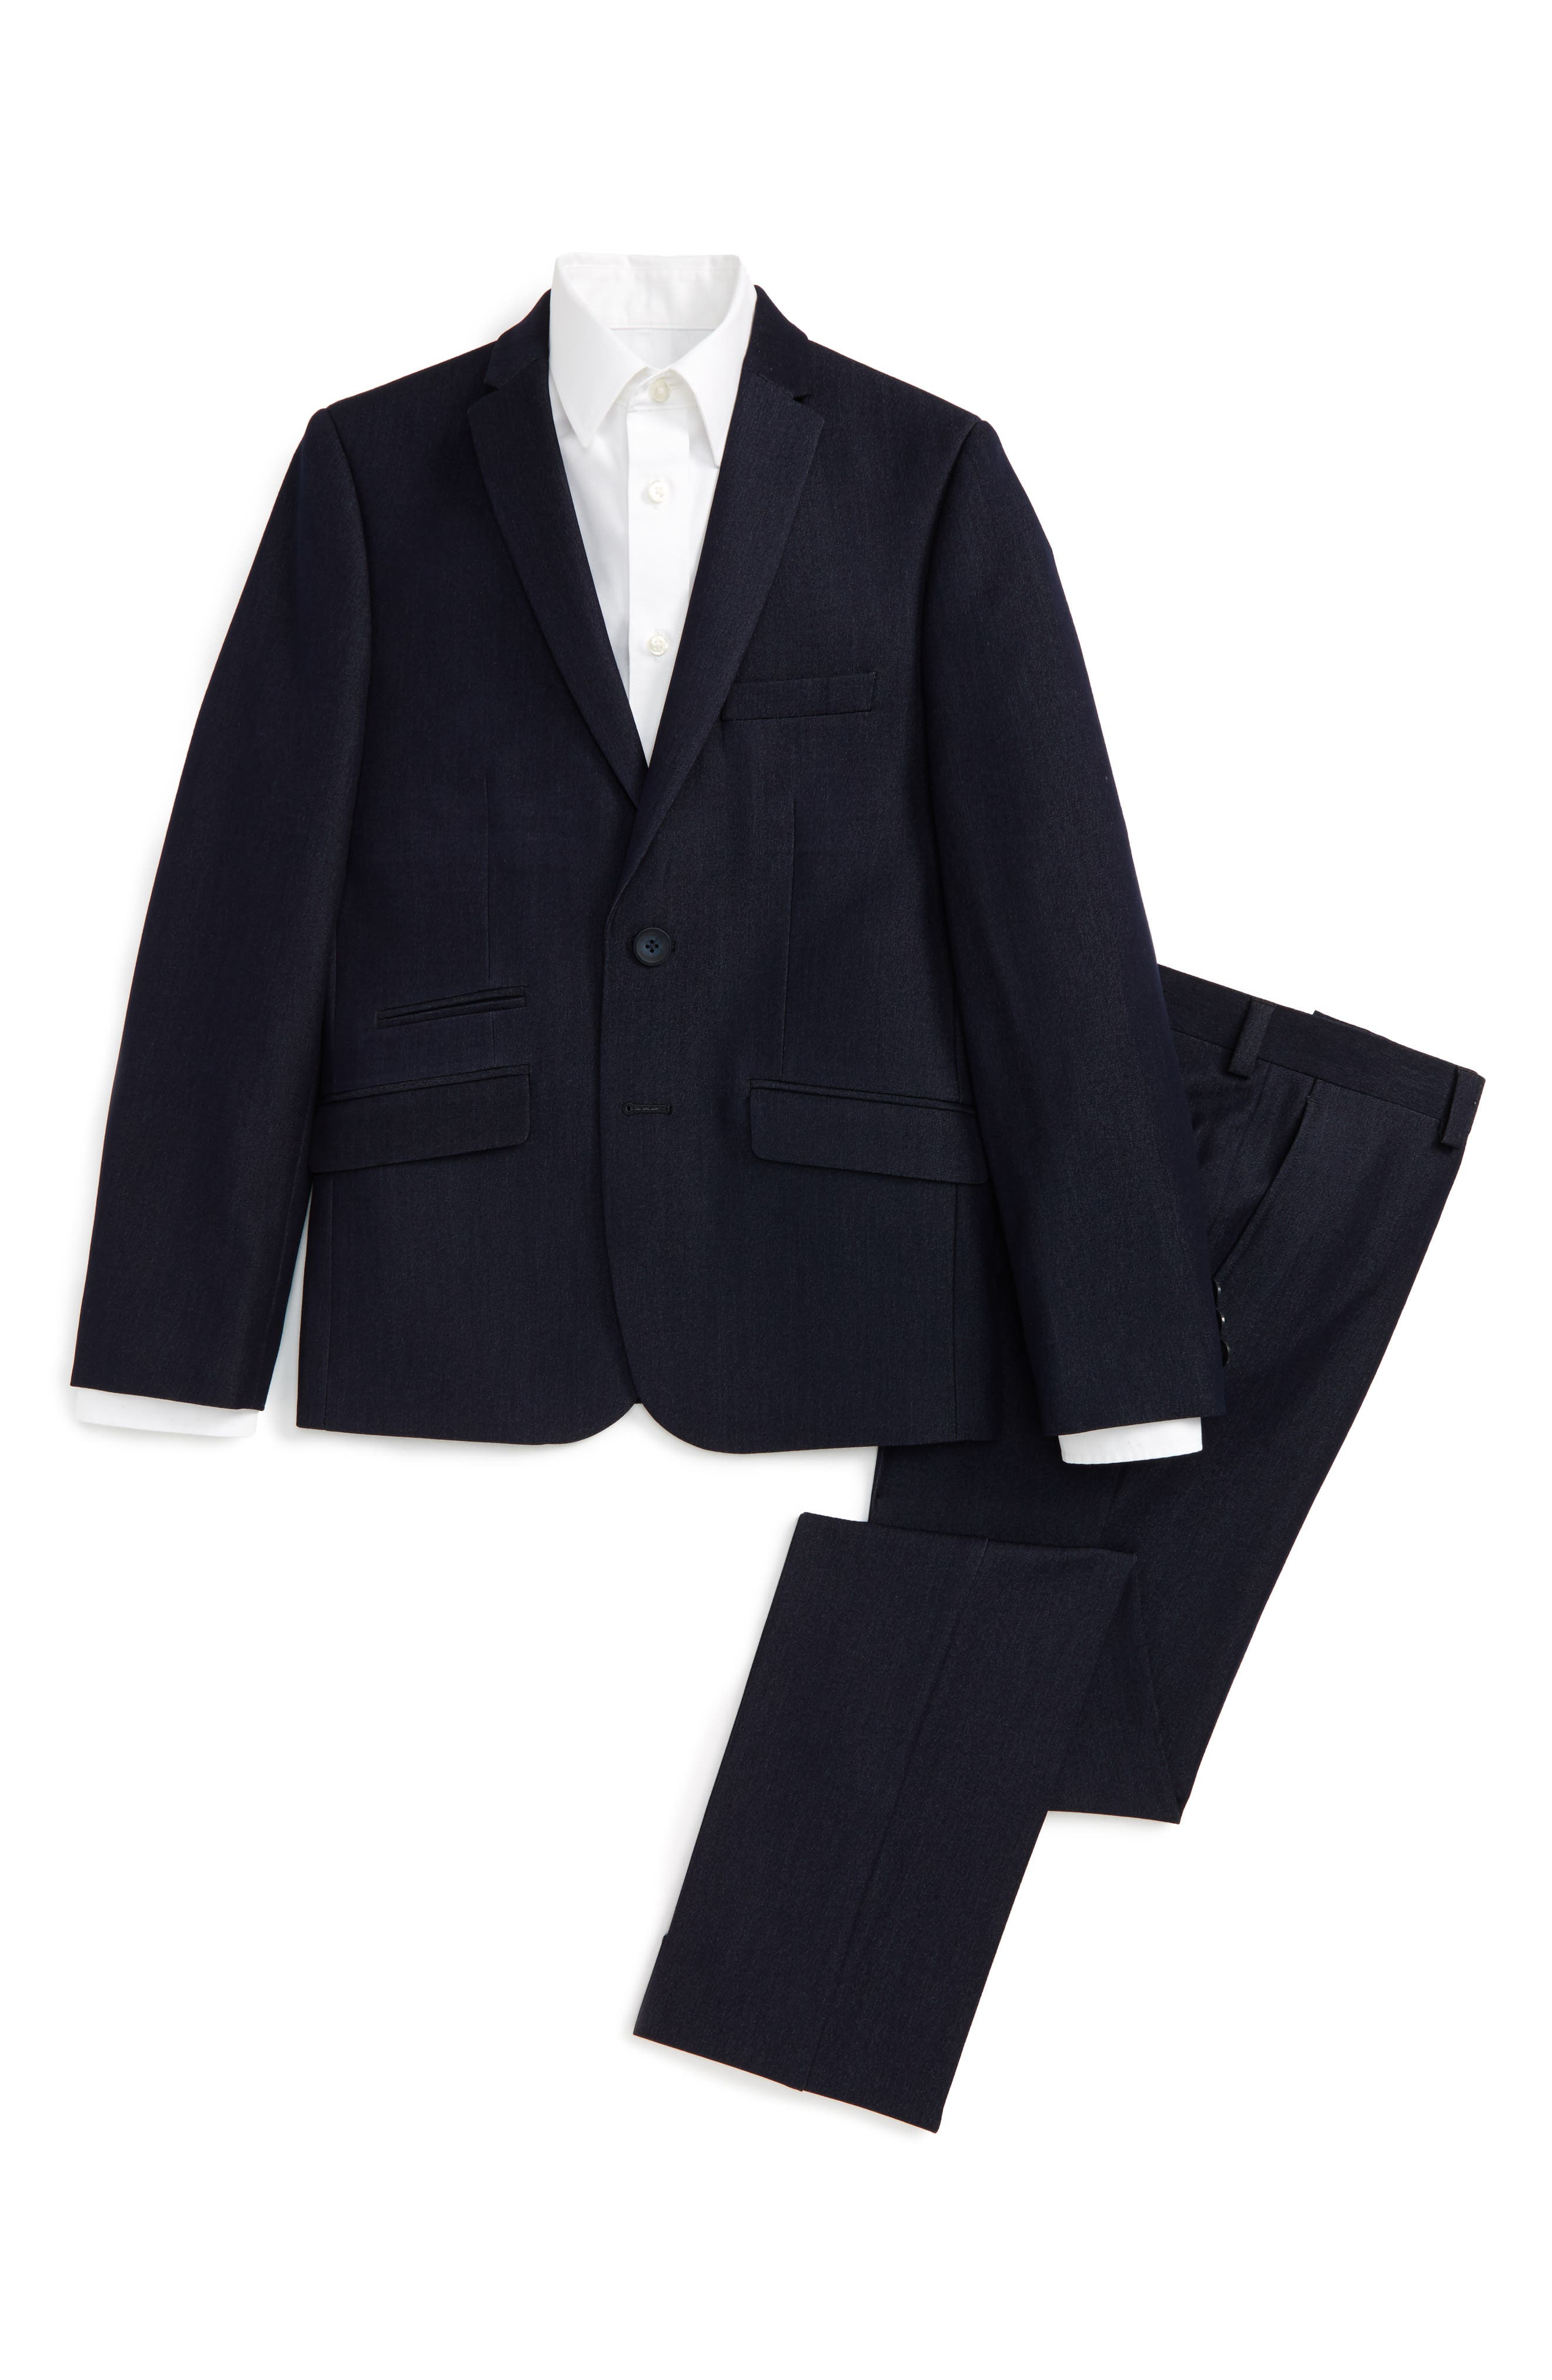 Main Image - Andrew Marc Twill Suit (Big Boys)